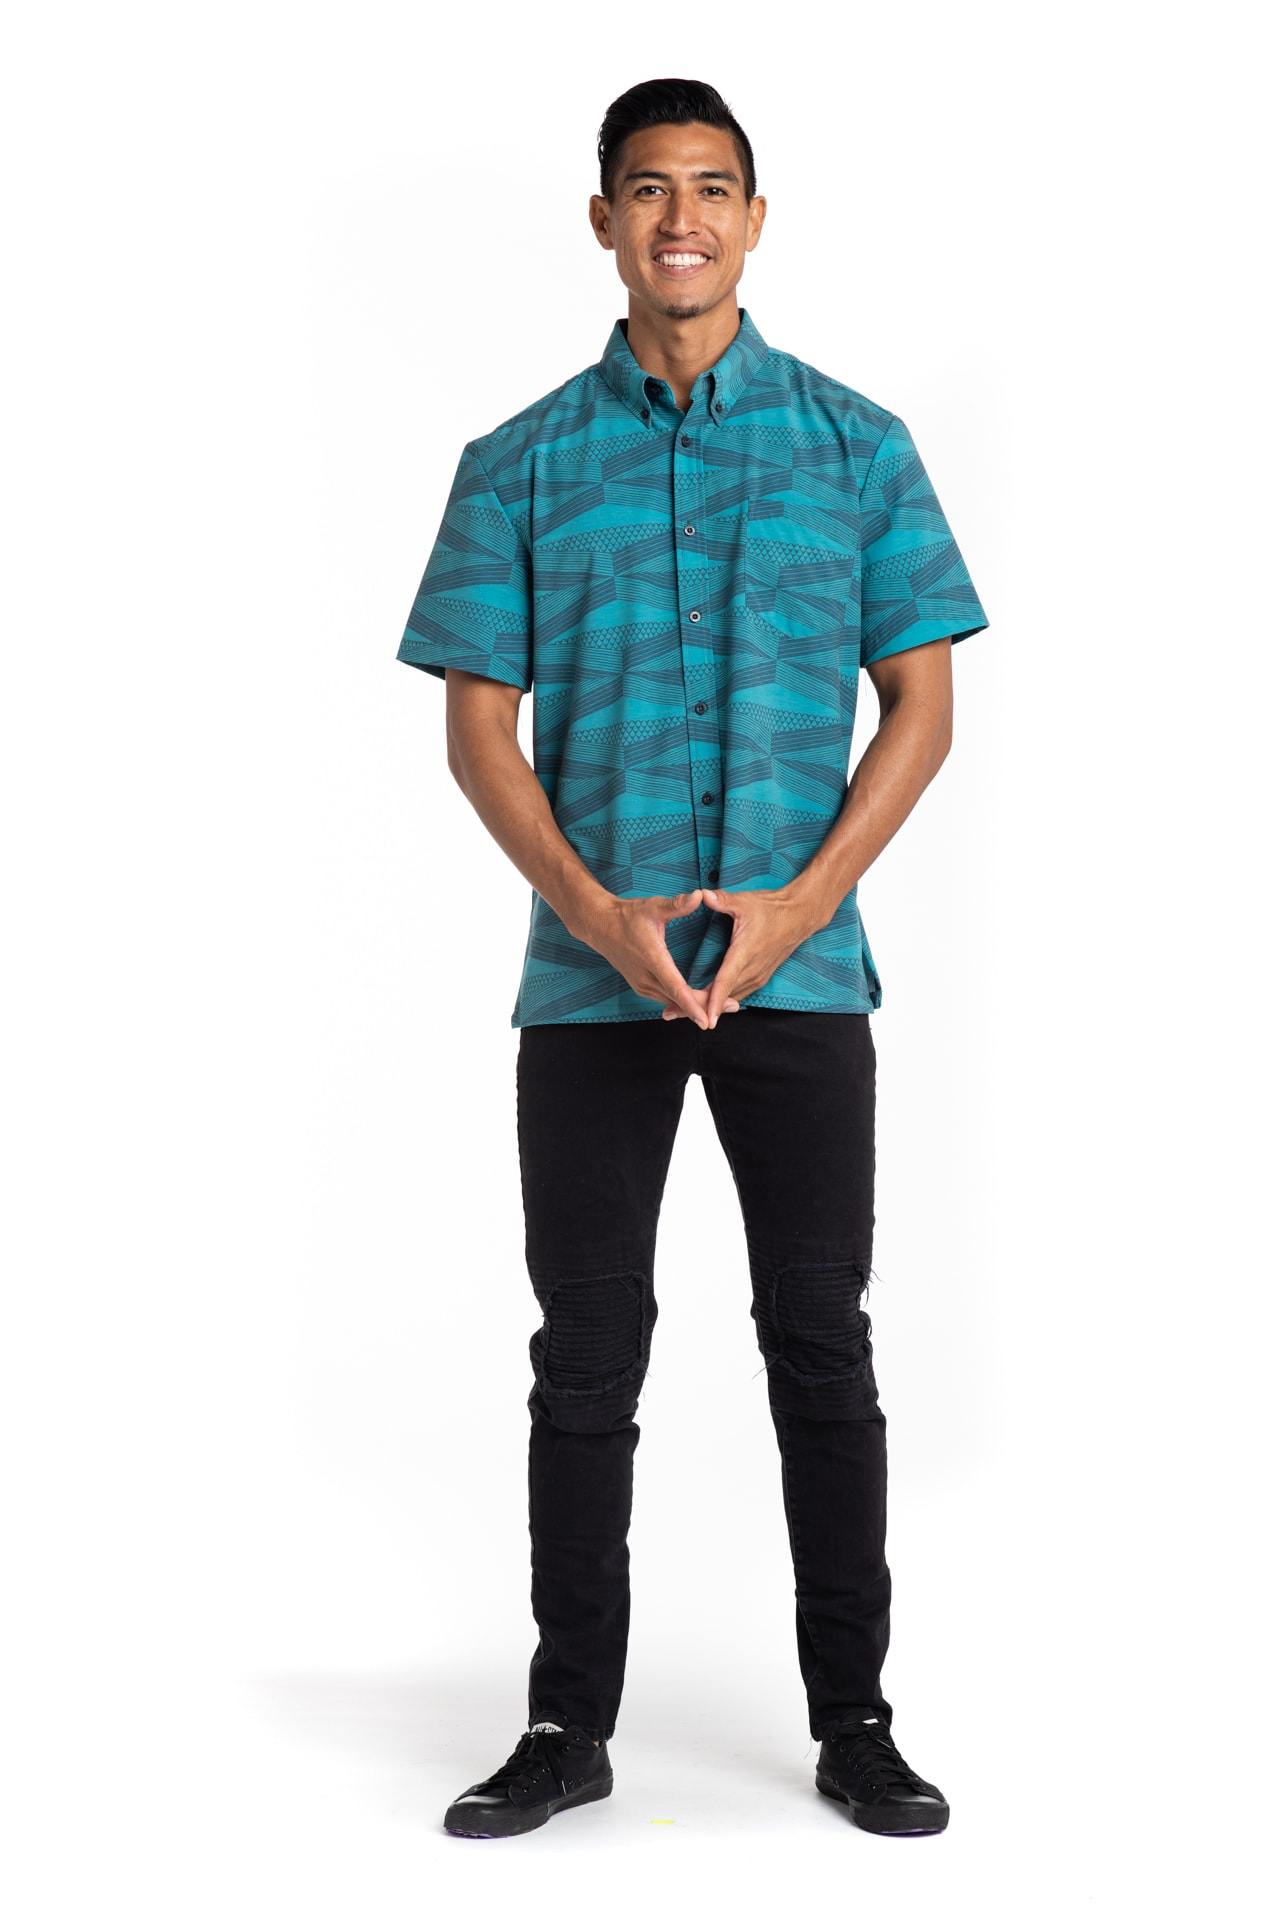 Male model wearing Mahalo Nui Shirt - Front View